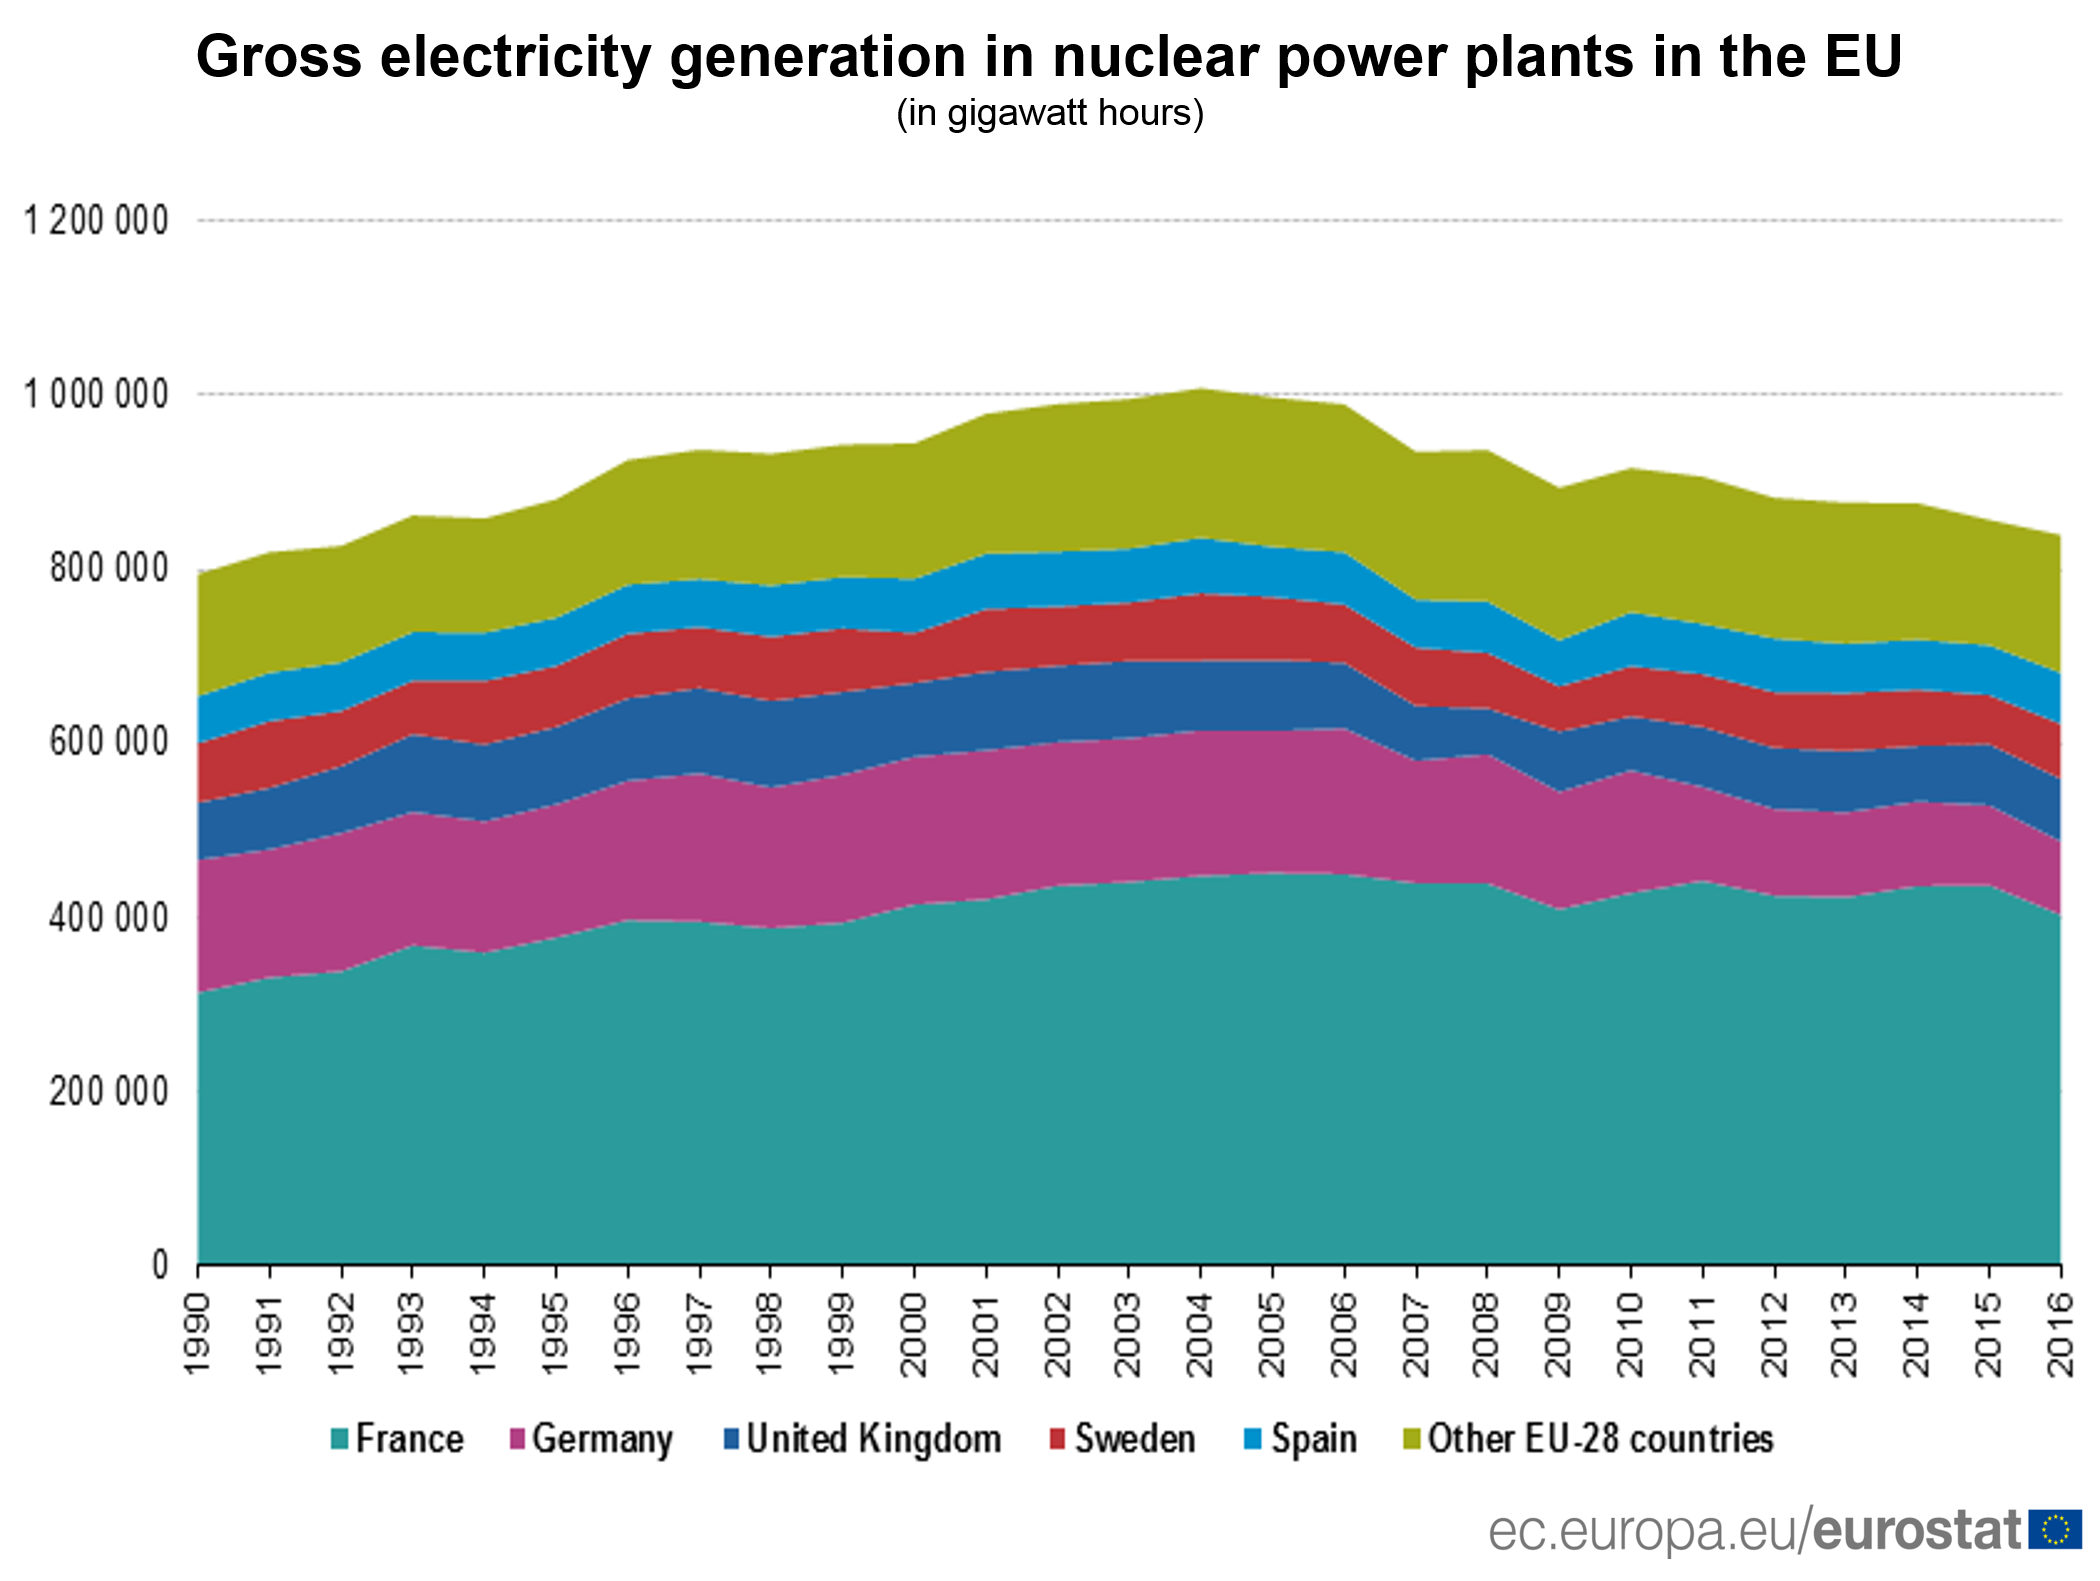 Electricity generation in EU nuclear power plants